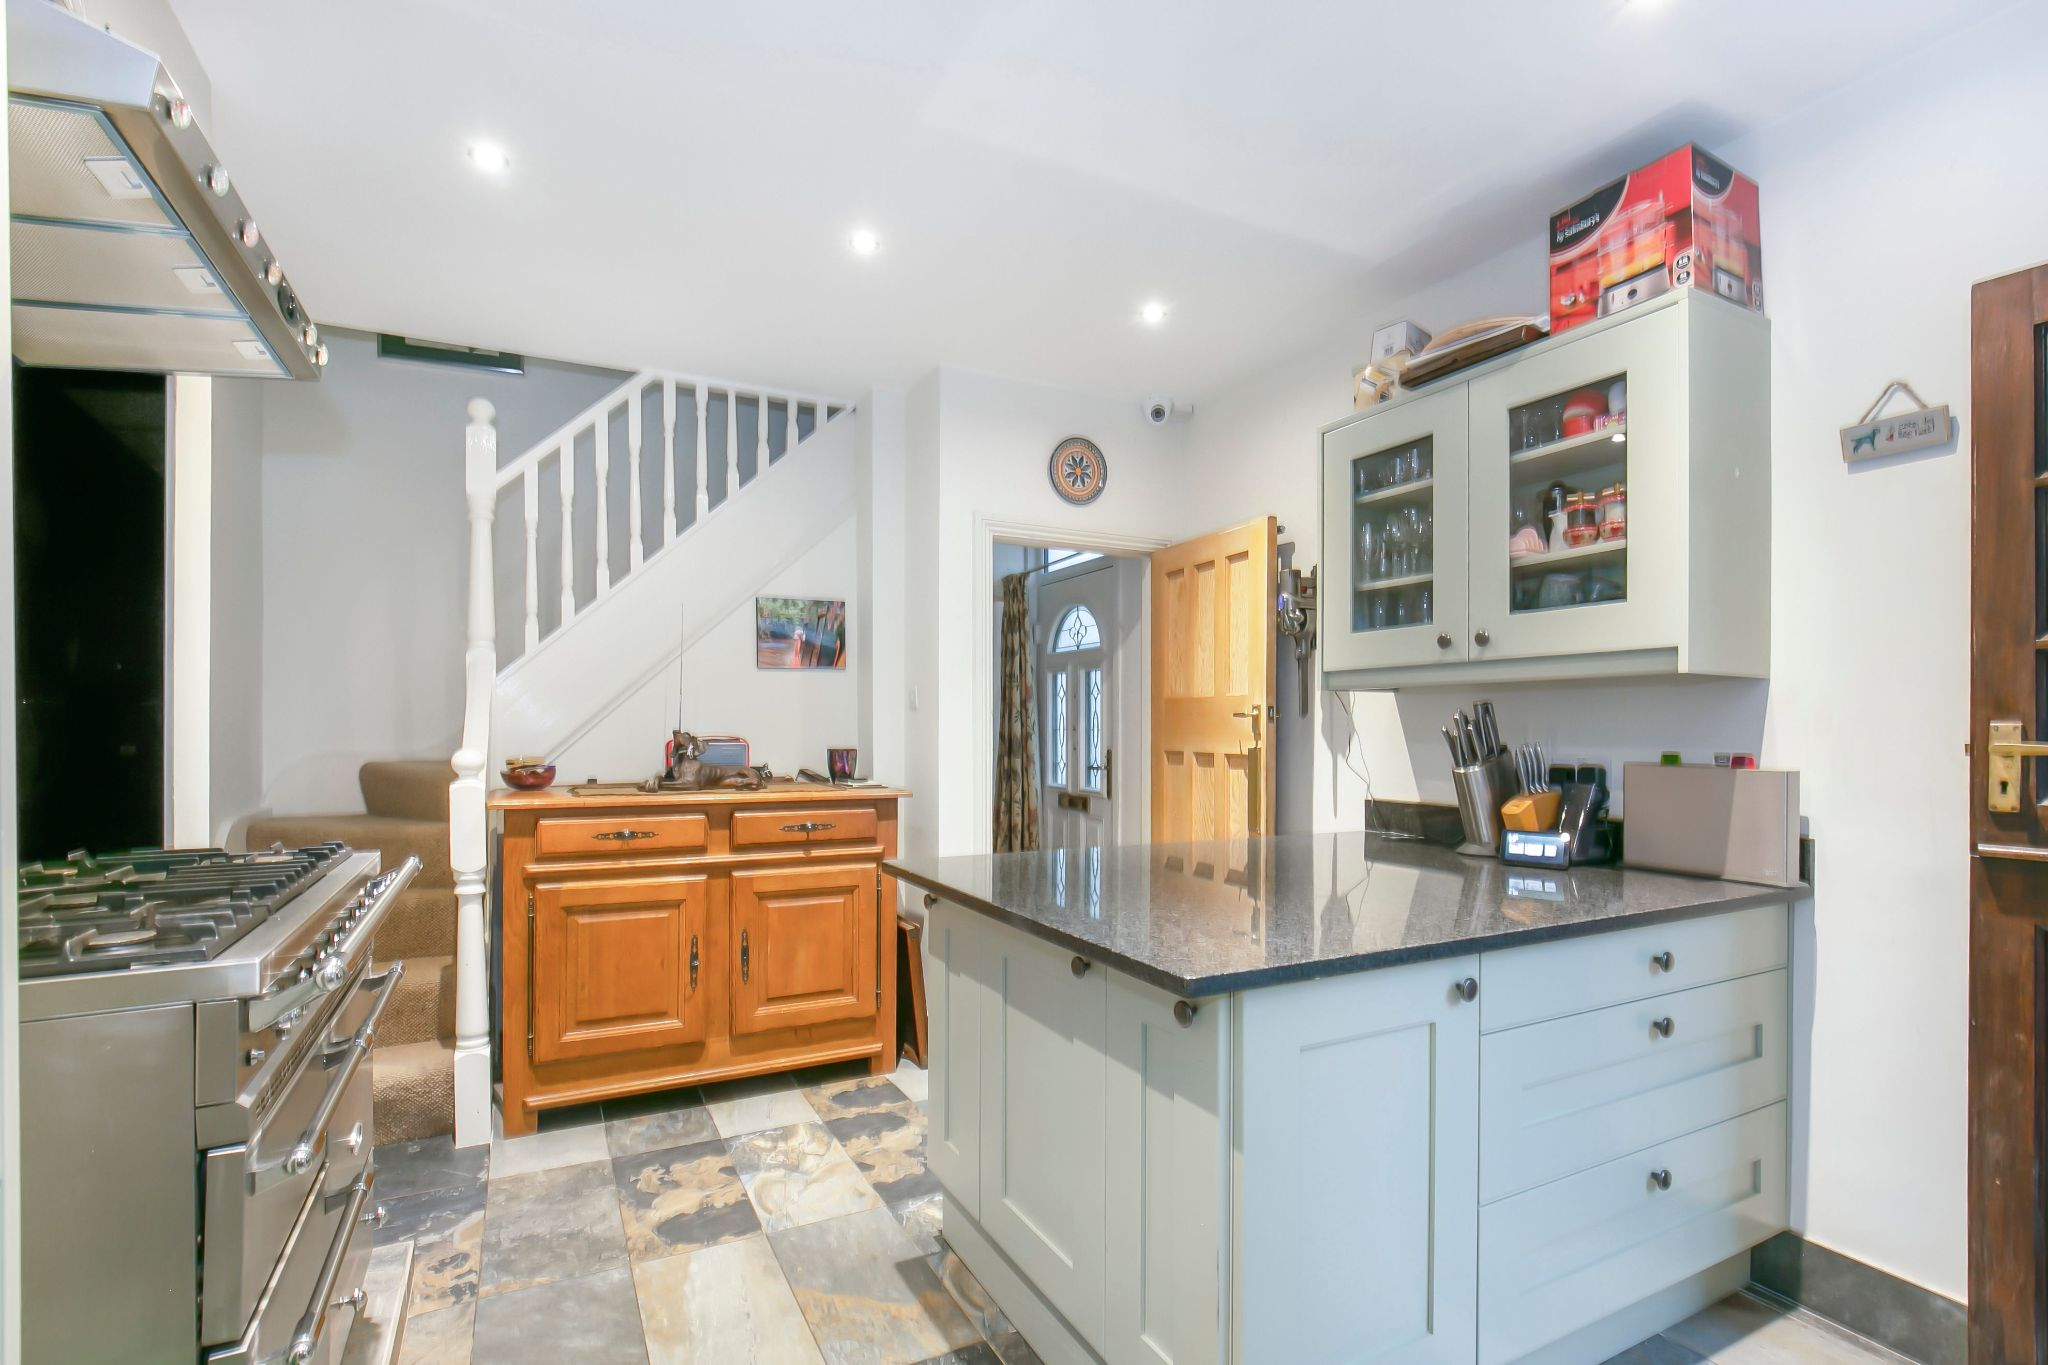 3 bedroom cottage house SSTC in Little Heath Potters Bar - Photograph 4